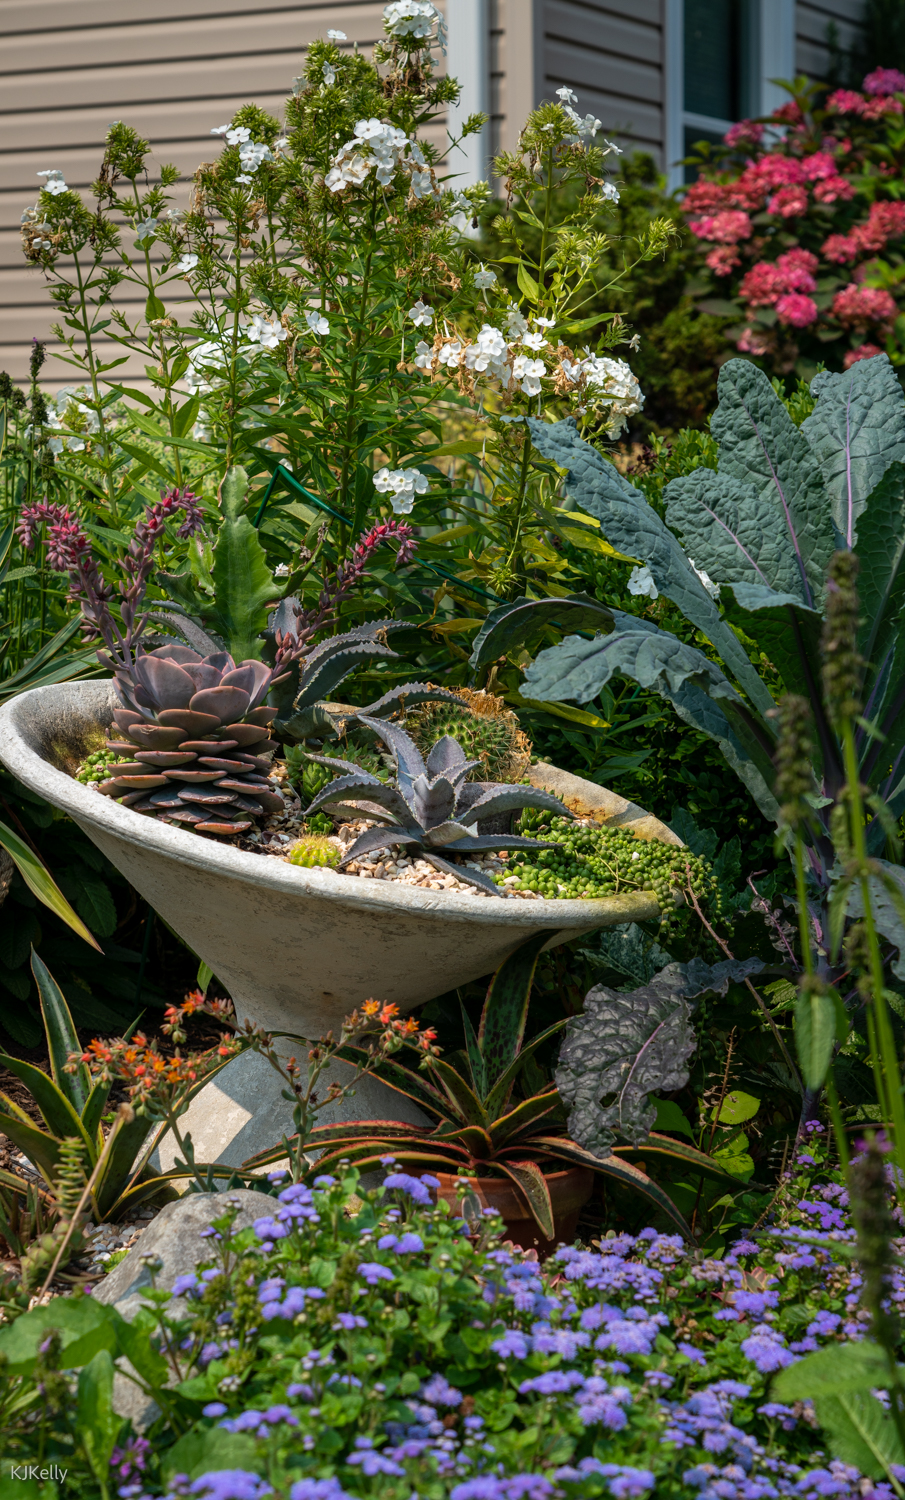 Succulents in an elevated bowl surrounded by plants